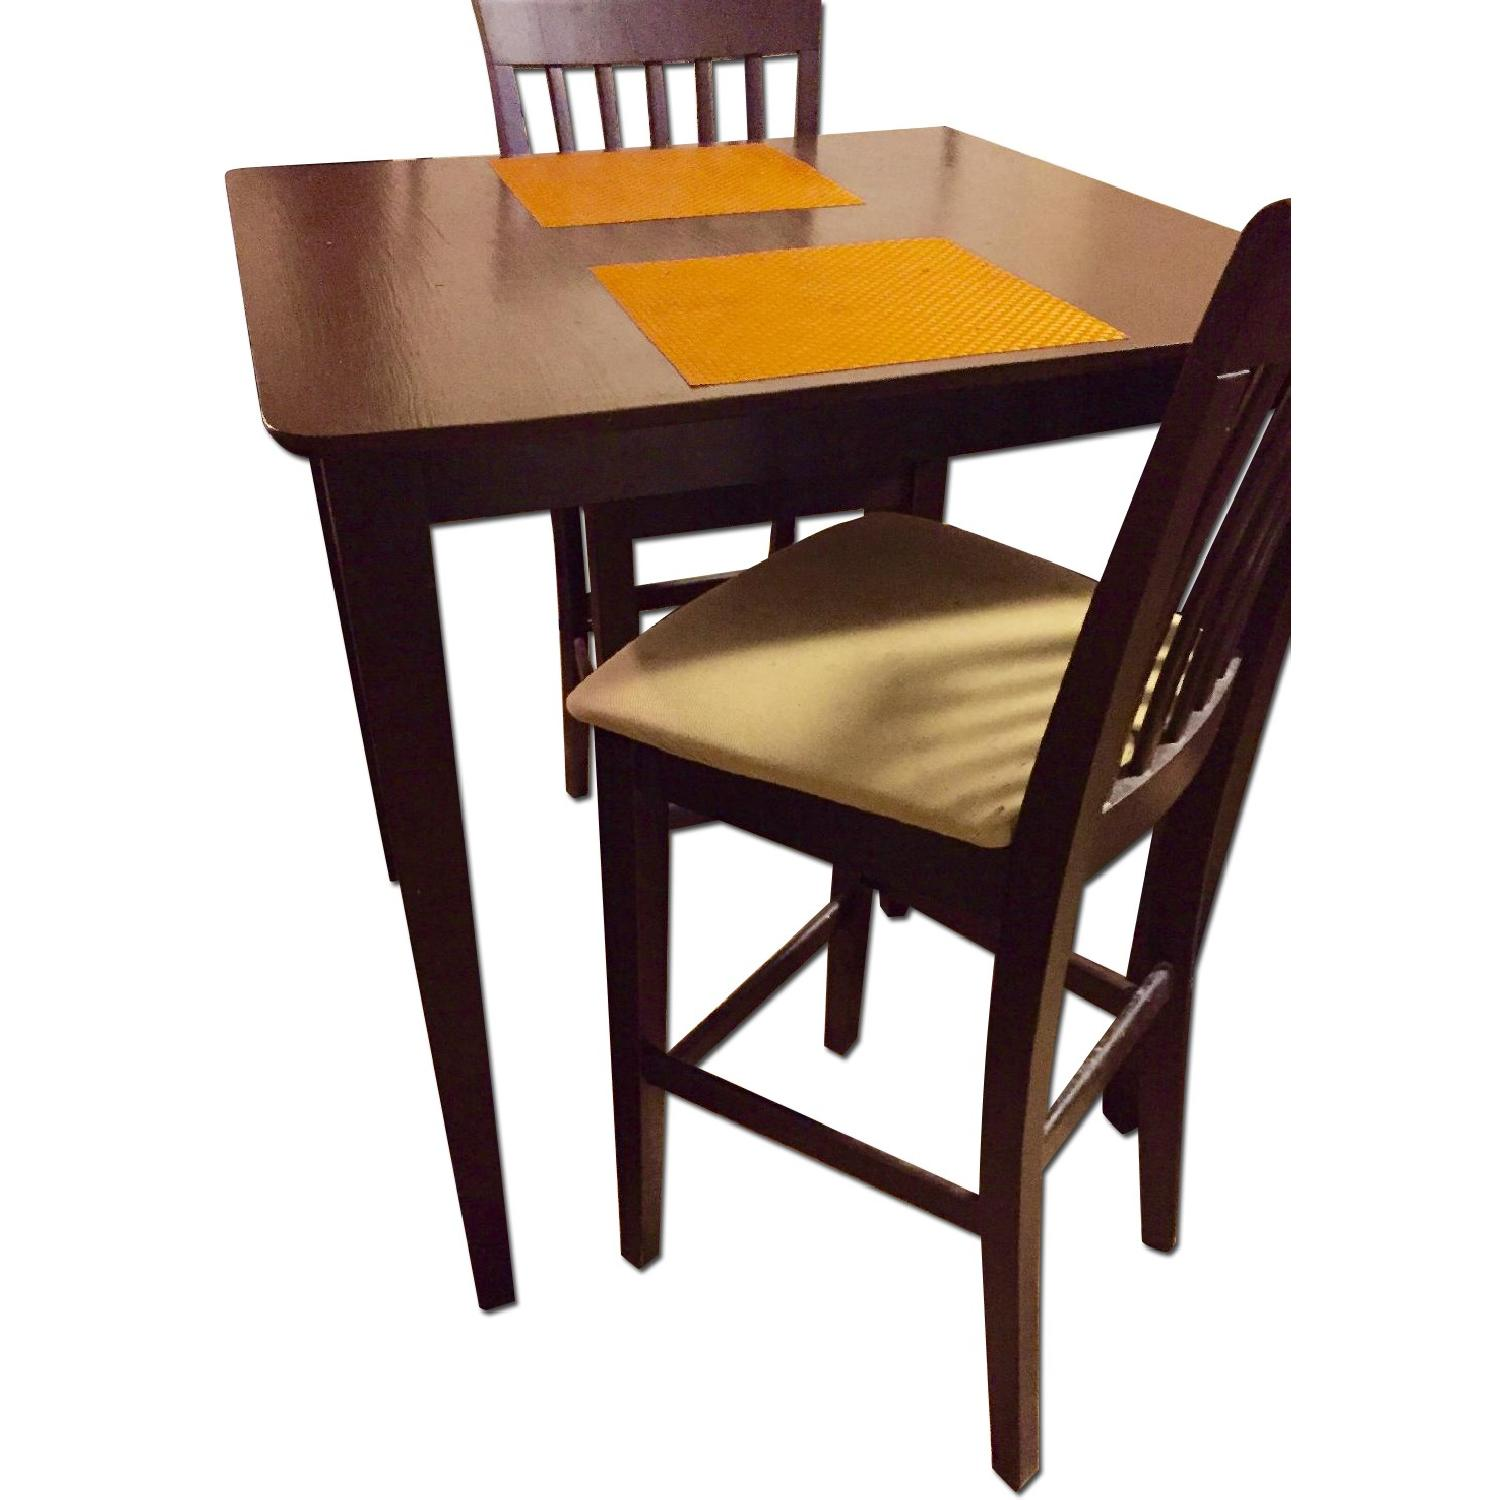 Dining/Pub Table w/ 2 Chairs - image-0